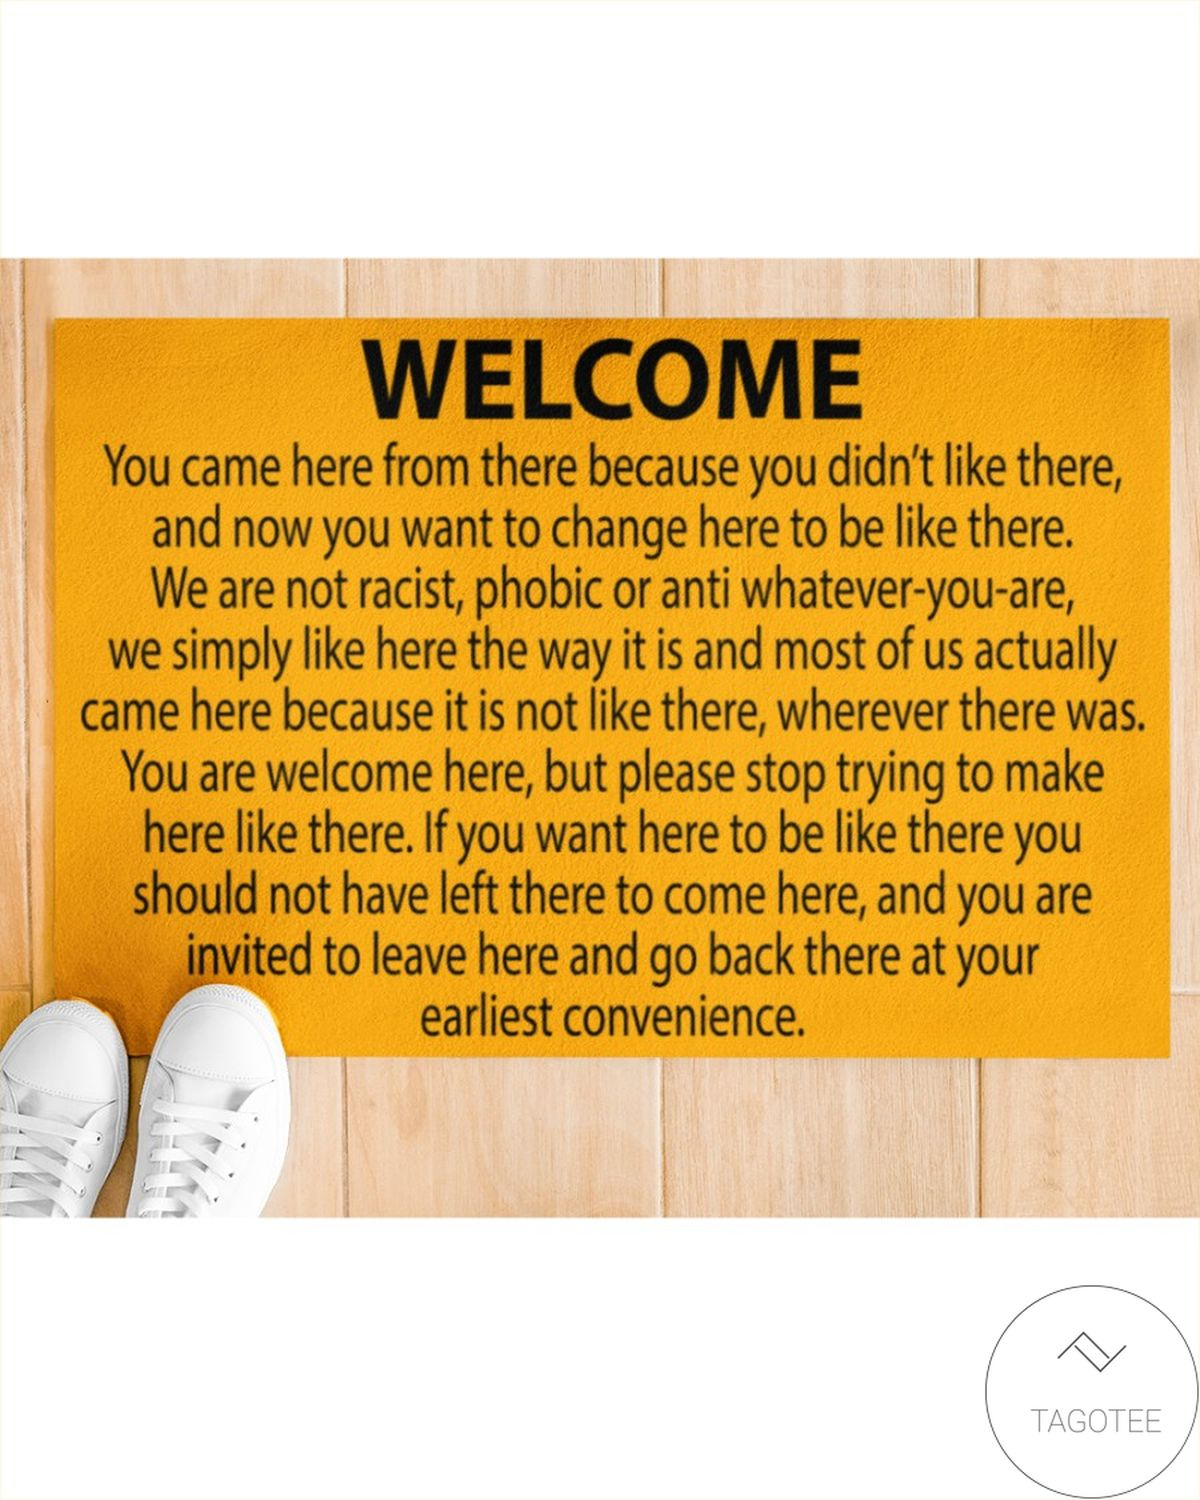 Present Welcome You Came Here From There Because You Didn't Like There Doormat